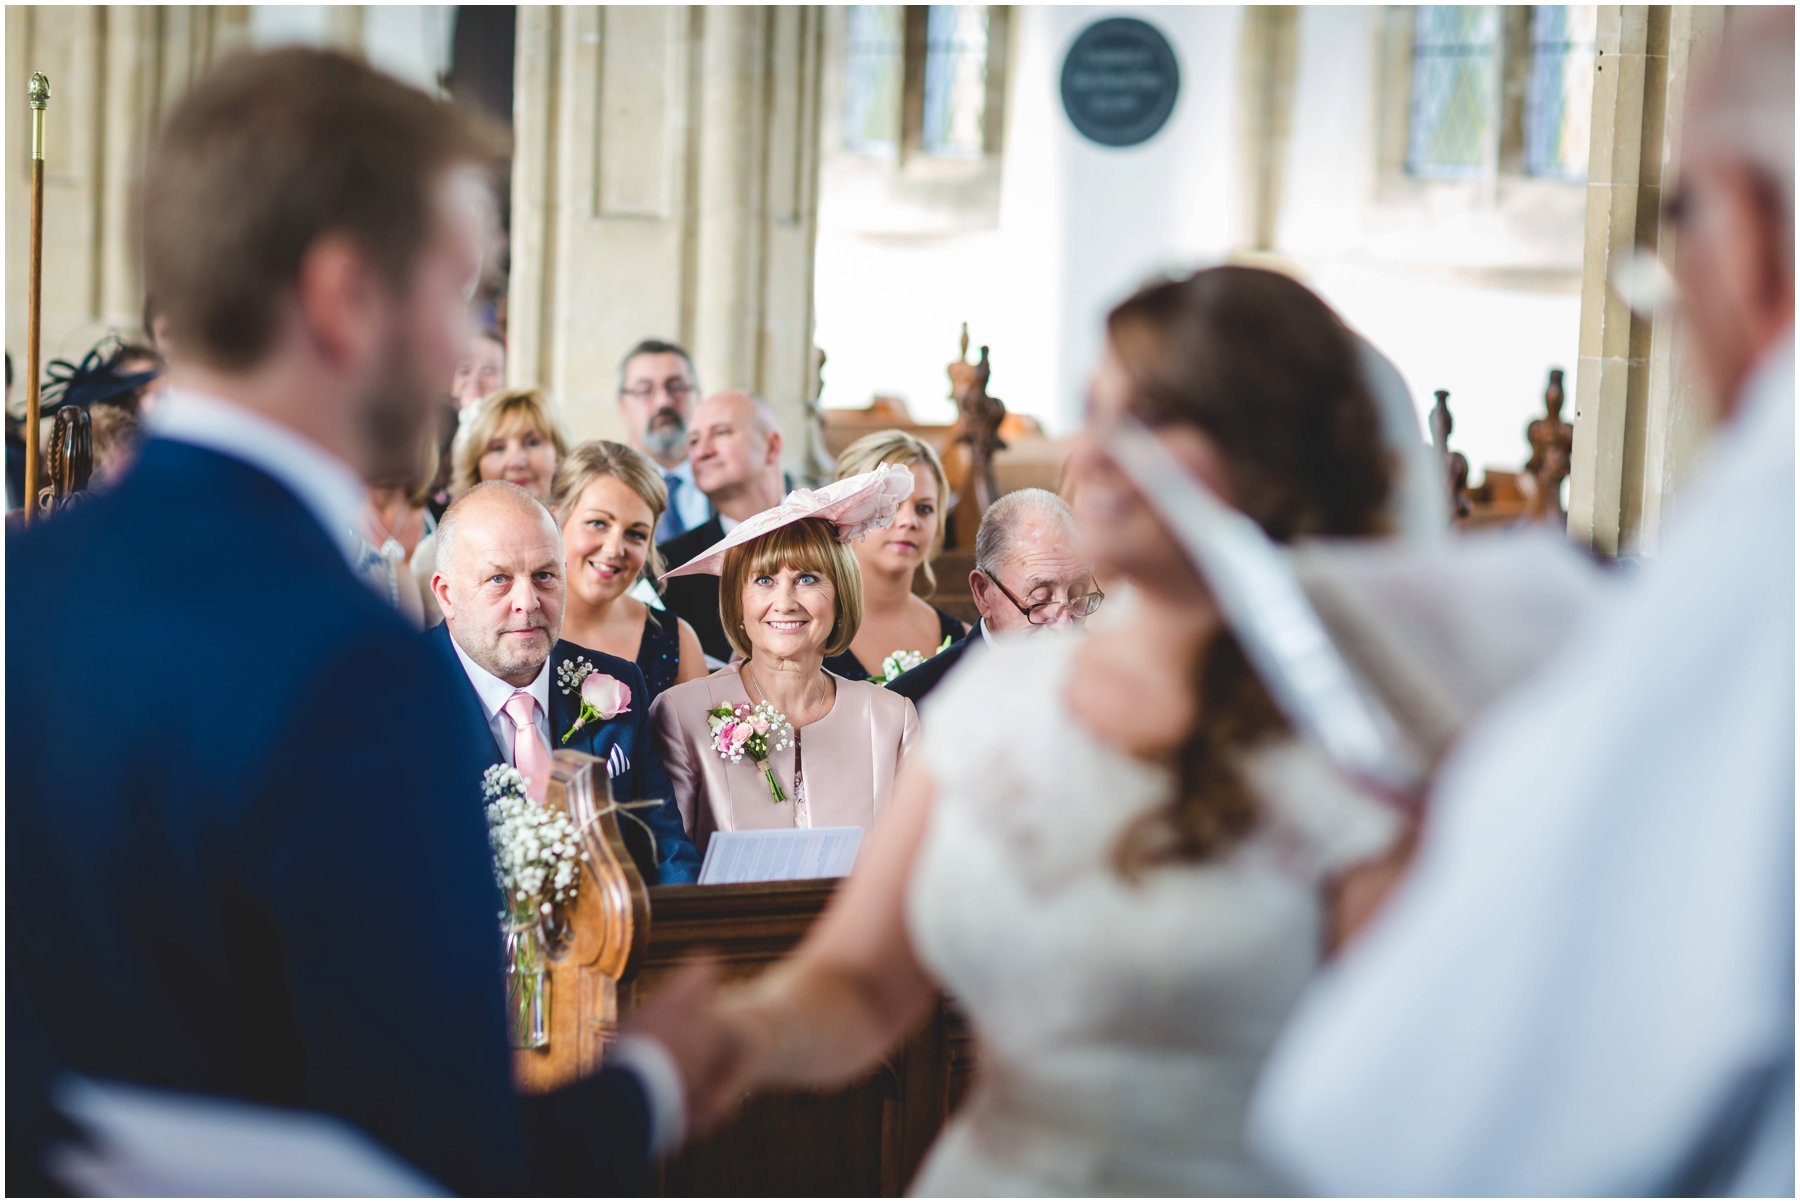 Andy Davison - The Boathouse Wedding Photographer